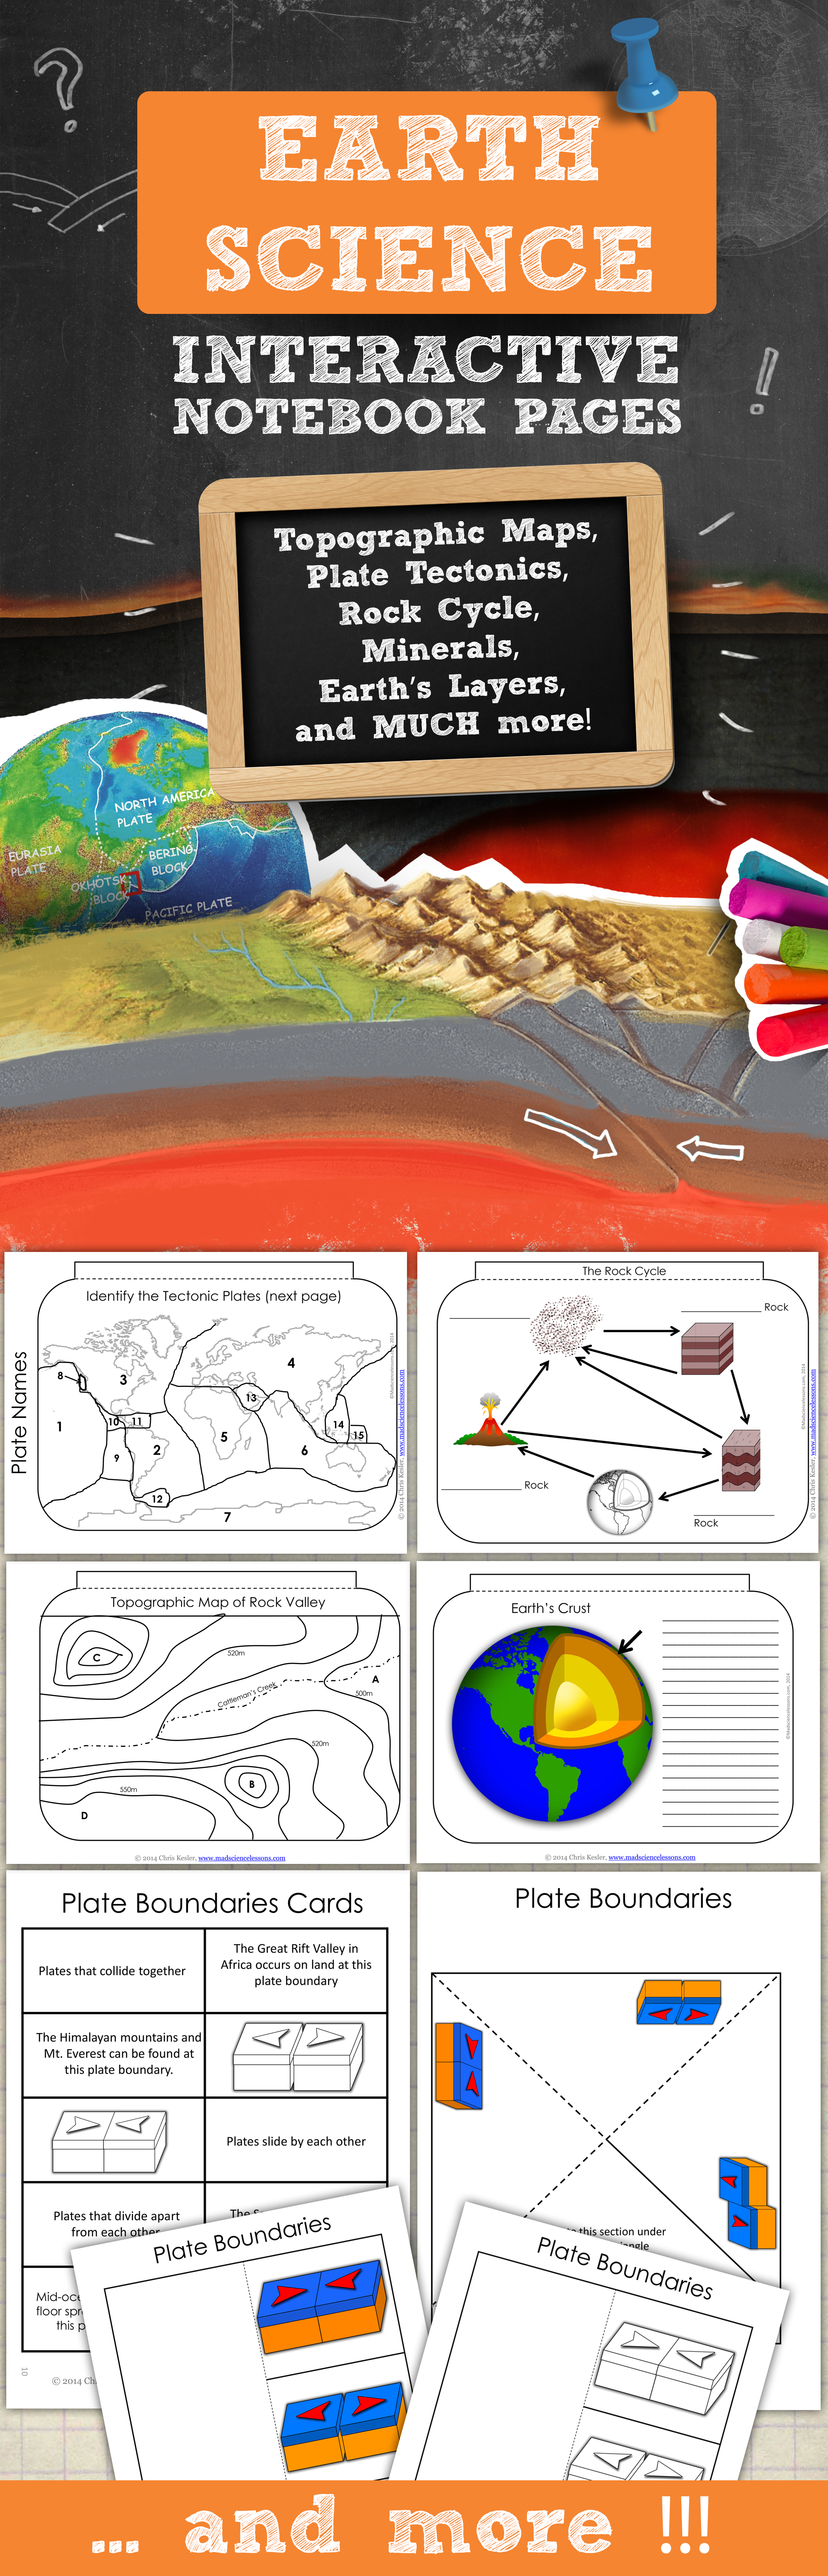 Earth Science Interactive Notebook Pages